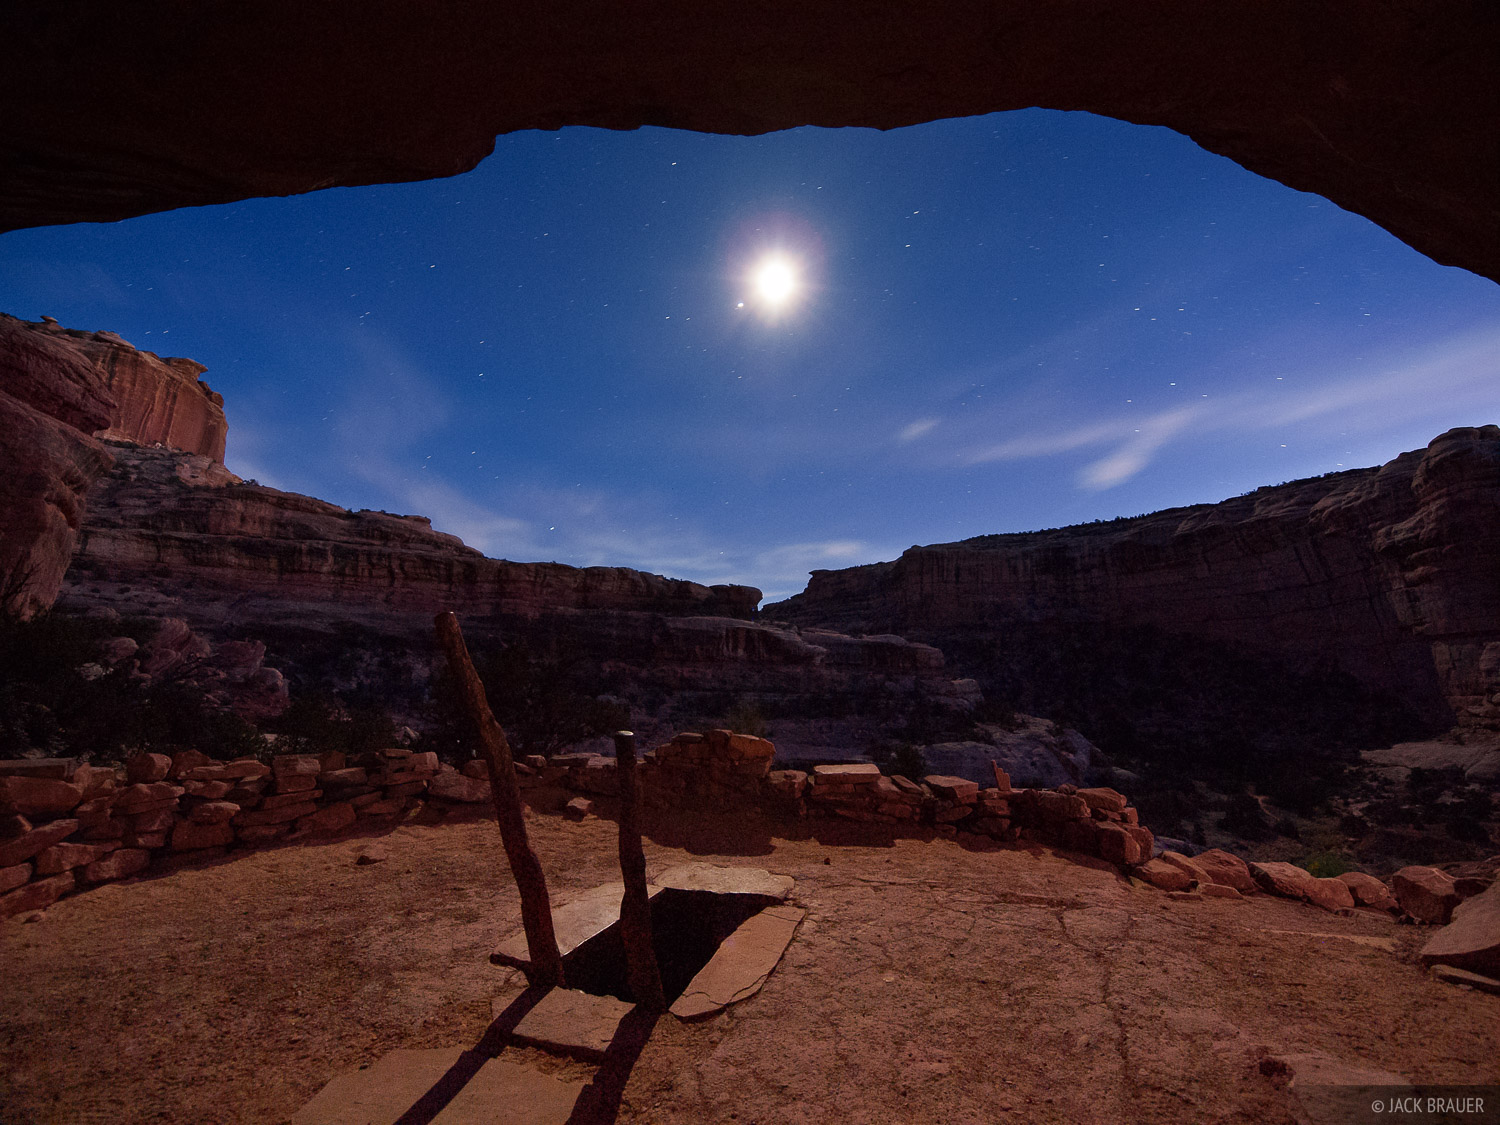 Grand Gulch, kiva, Utah, moonlight, Bears Ears National Monument, photo